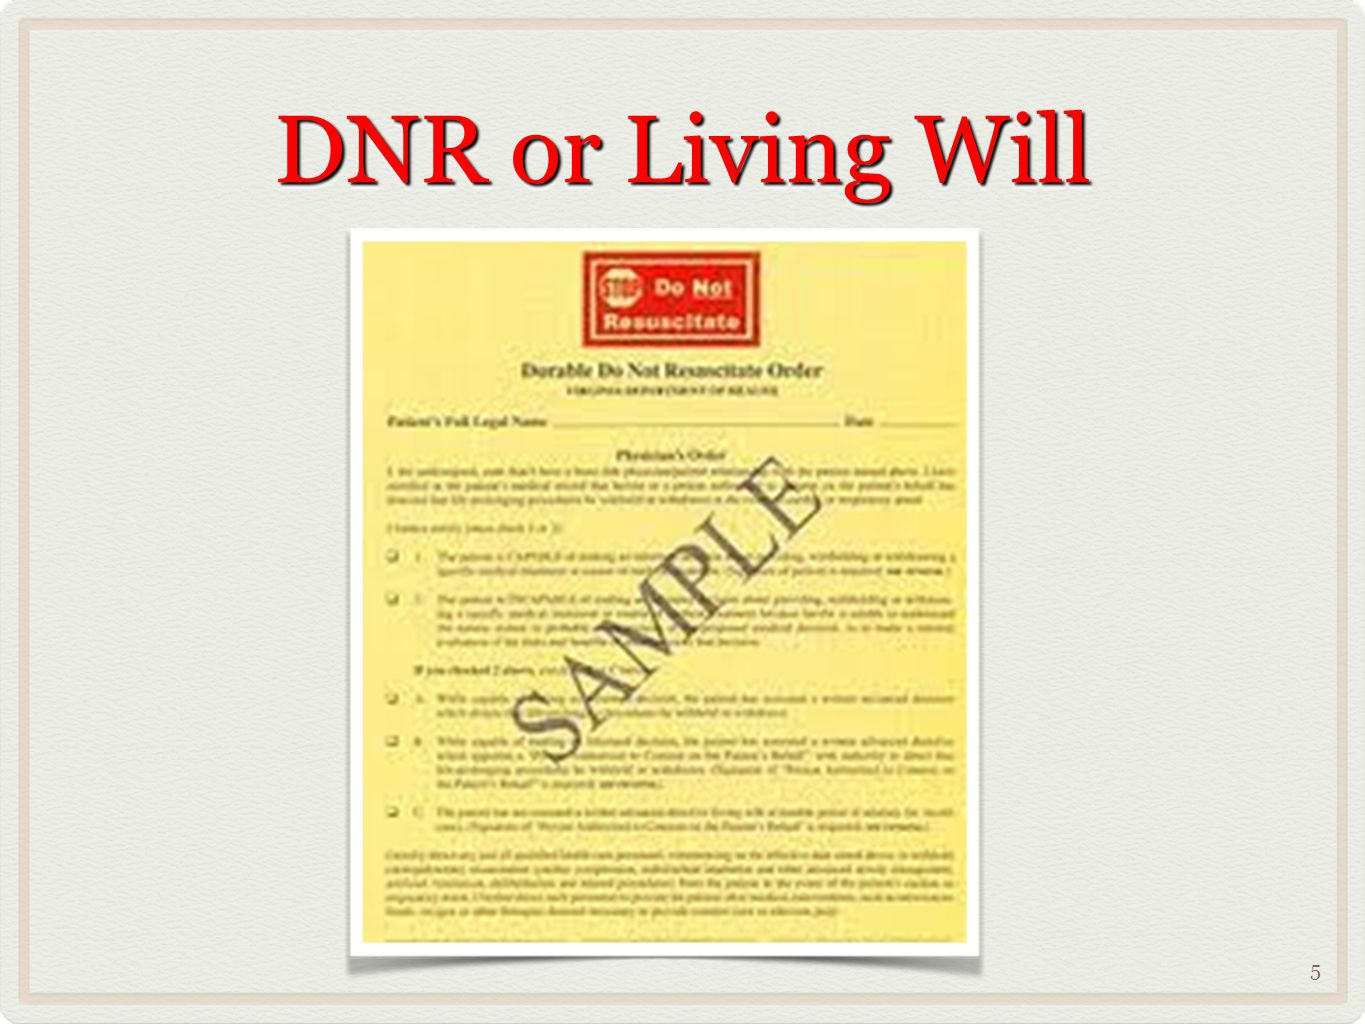 DNR or Living Will 5